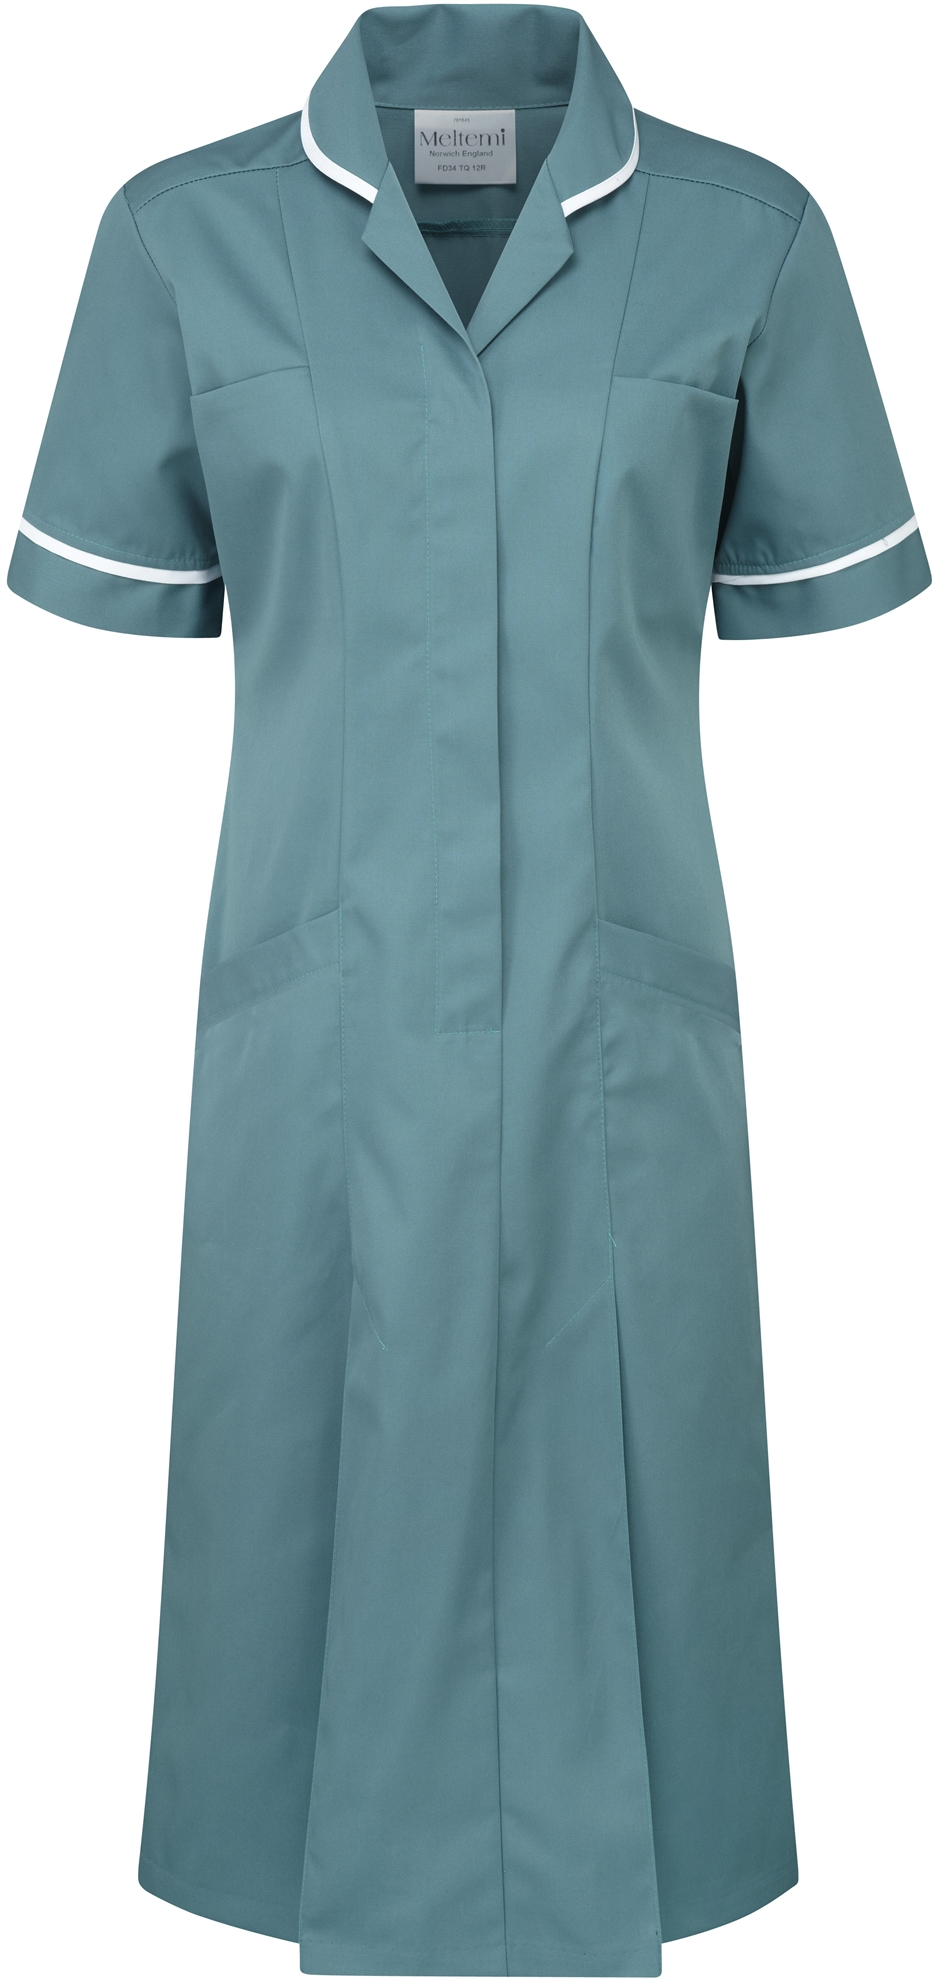 Picture of Plain Colour Dress - Turquoise/White